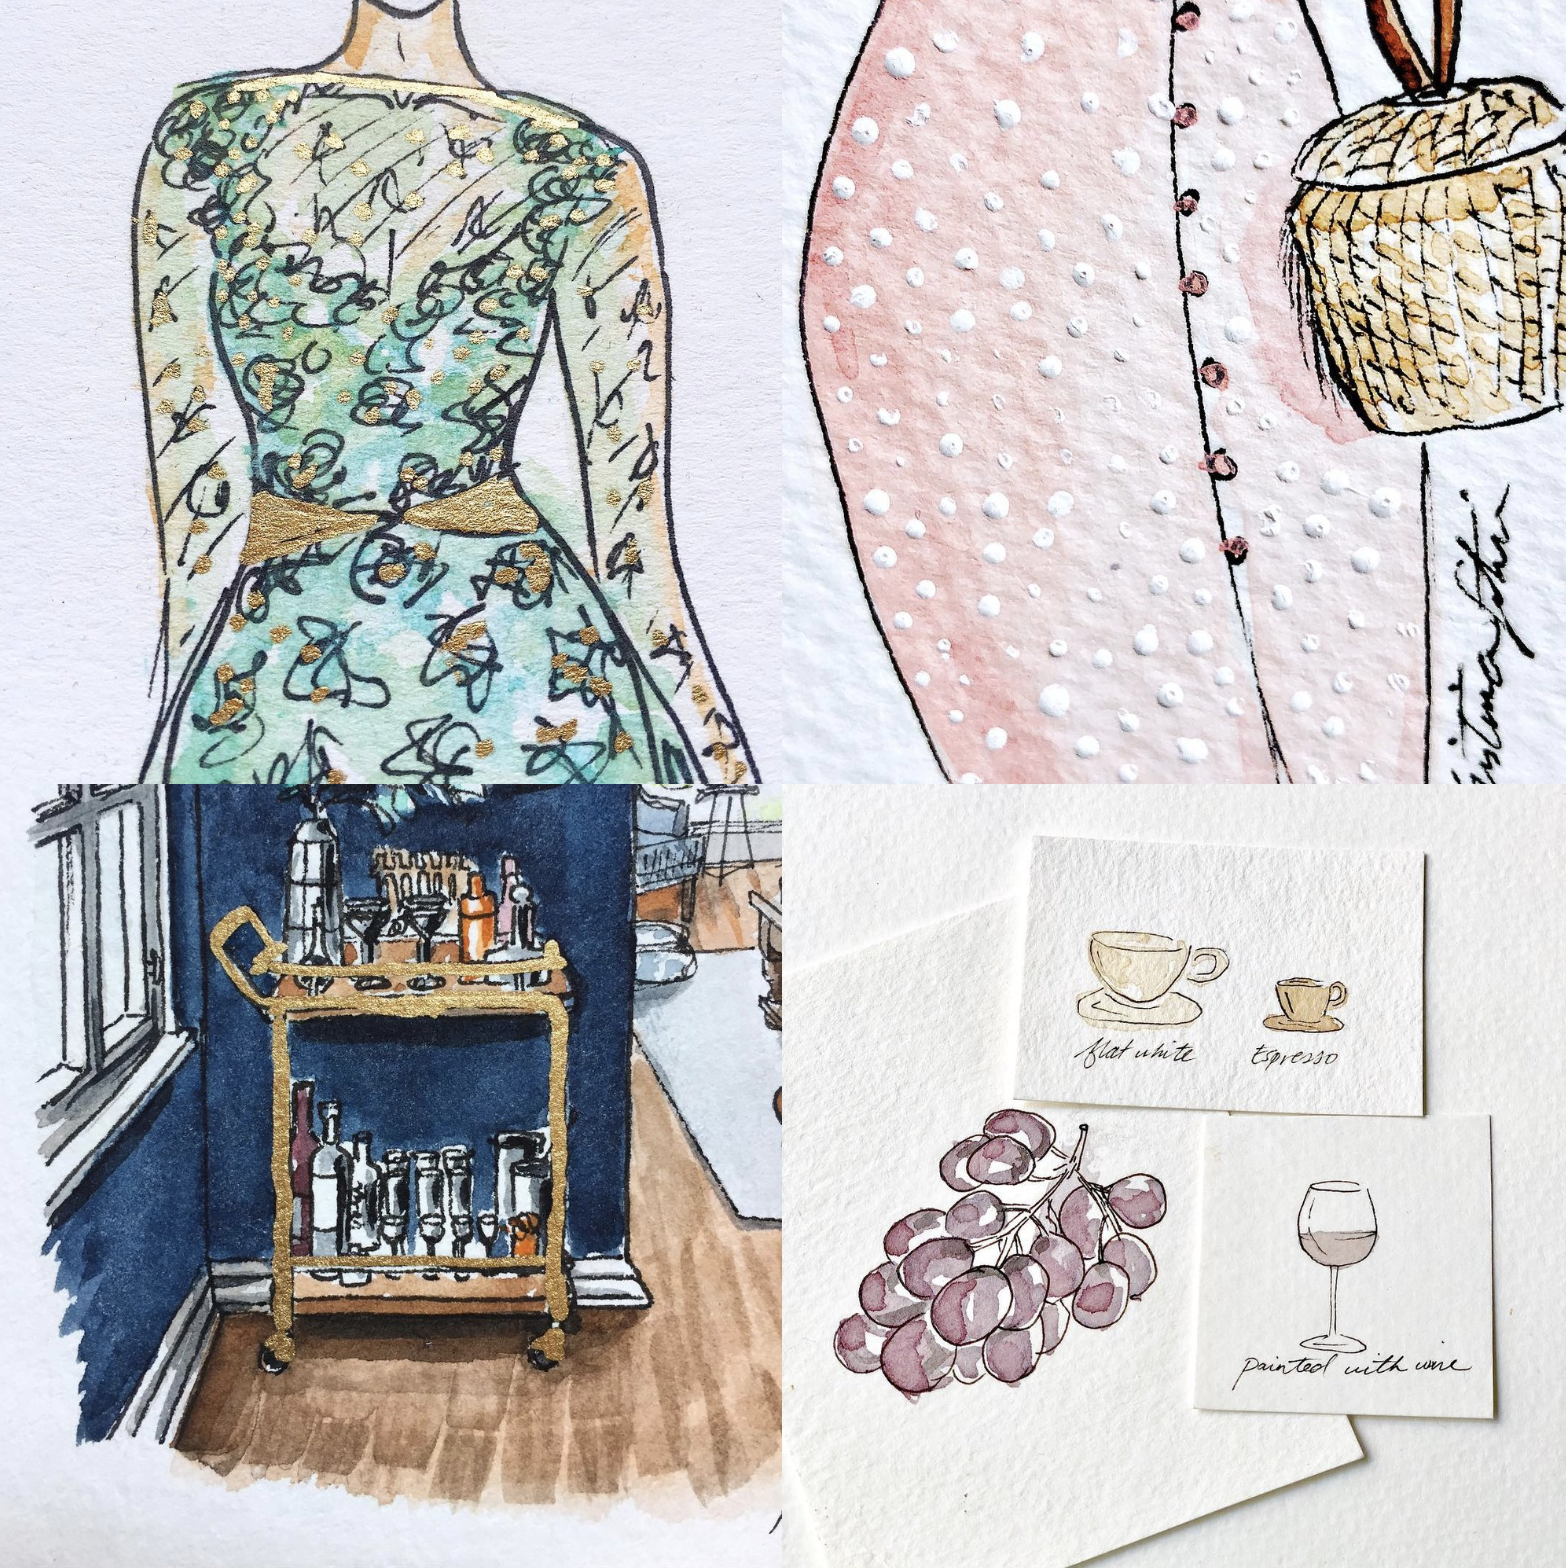 Lesson # 5. Play outside the Watercolors. - Once I started getting comfortable with the basics, I began expanding into more playful territories, like using a gold leafing pen to mimic brass accents on a bar cart or a dress, using white ink to create dots, or even painting with actual wine and espresso (bottom right), just to see what it would look like (surprisingly diluted, it turns out.) The point is, play play play!